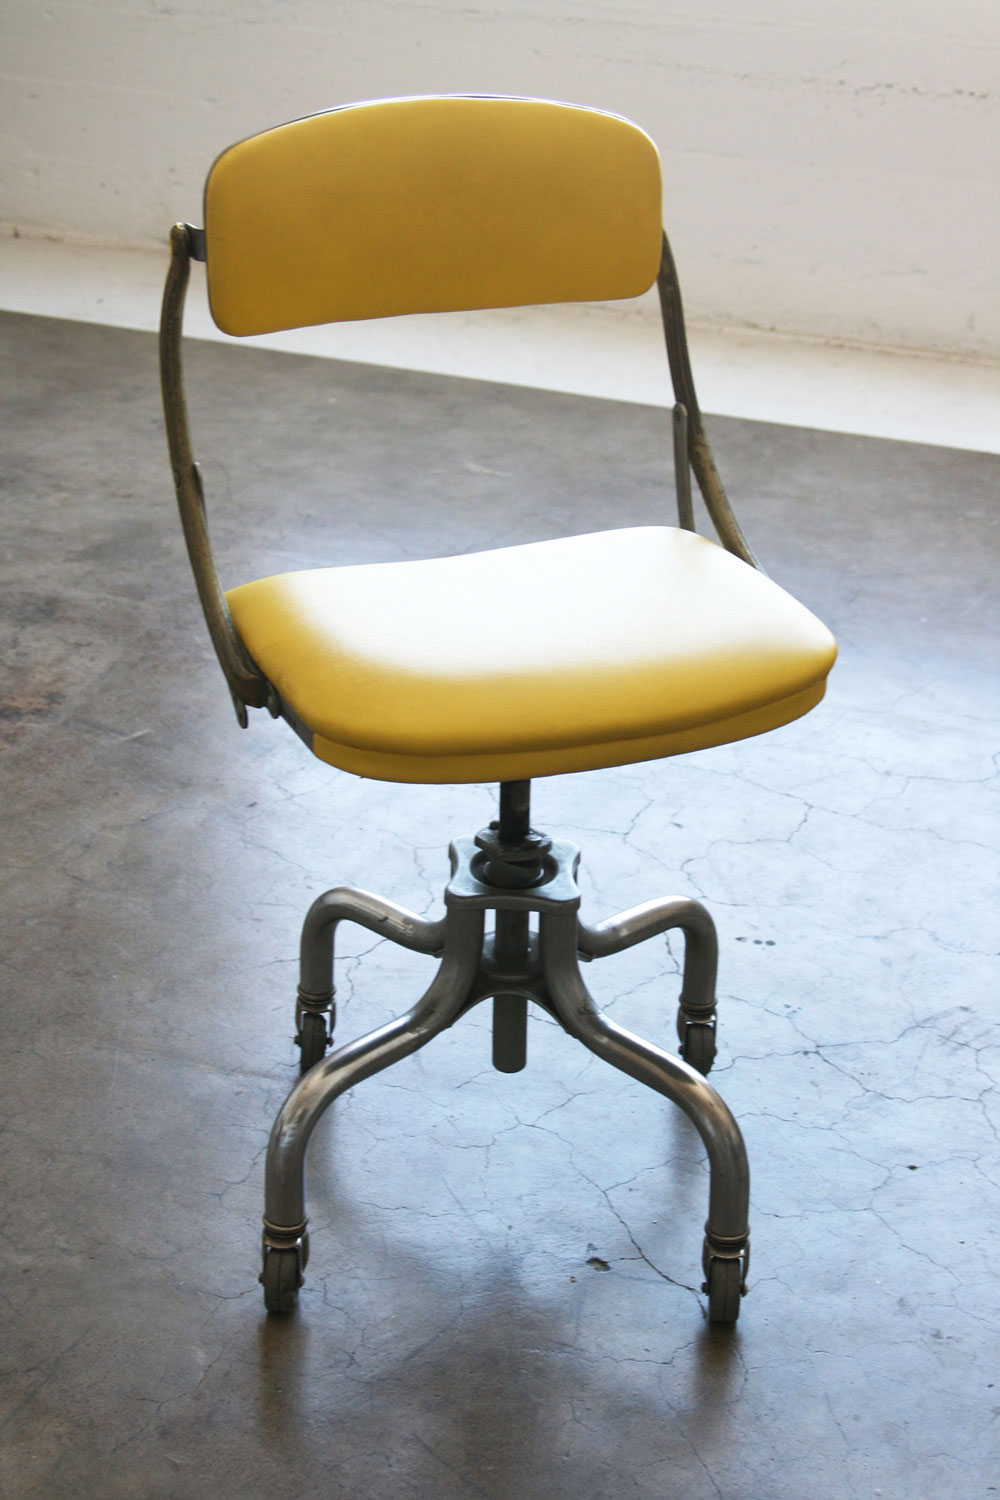 domore-chair_5243